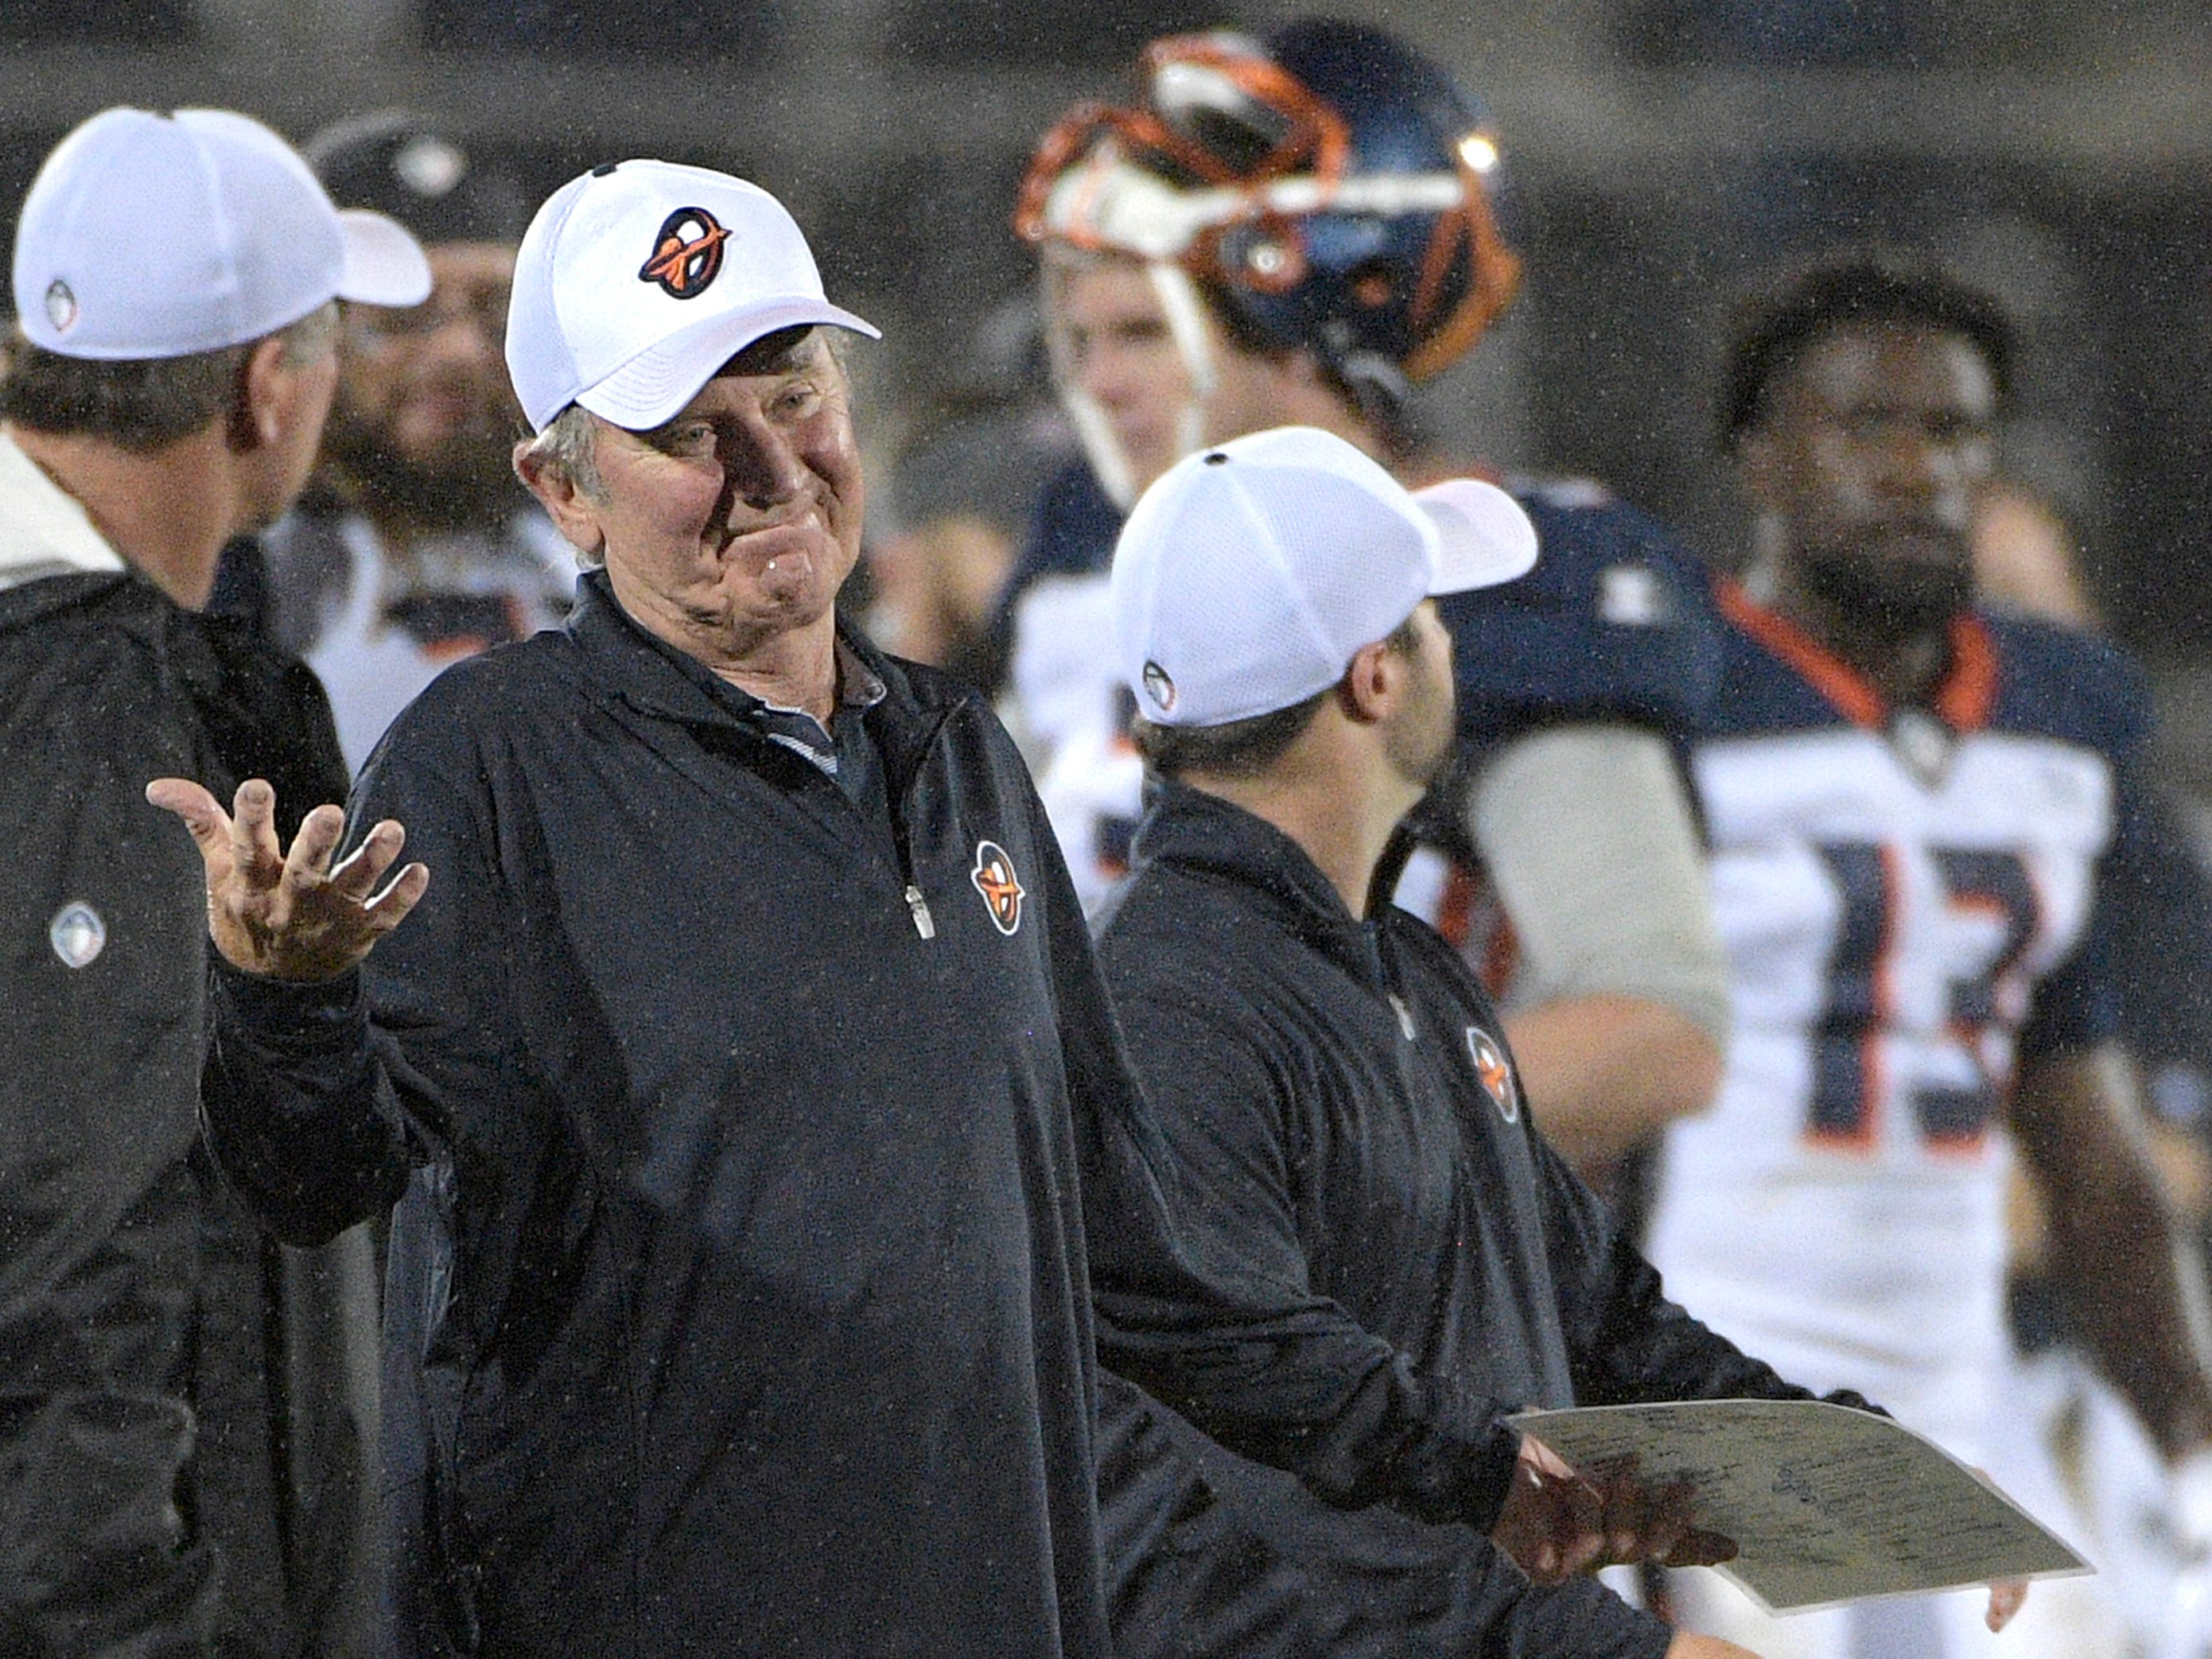 Orlando Apollos coach Steve Spurrier reacts after a play during the second half against the Atlanta Legends.